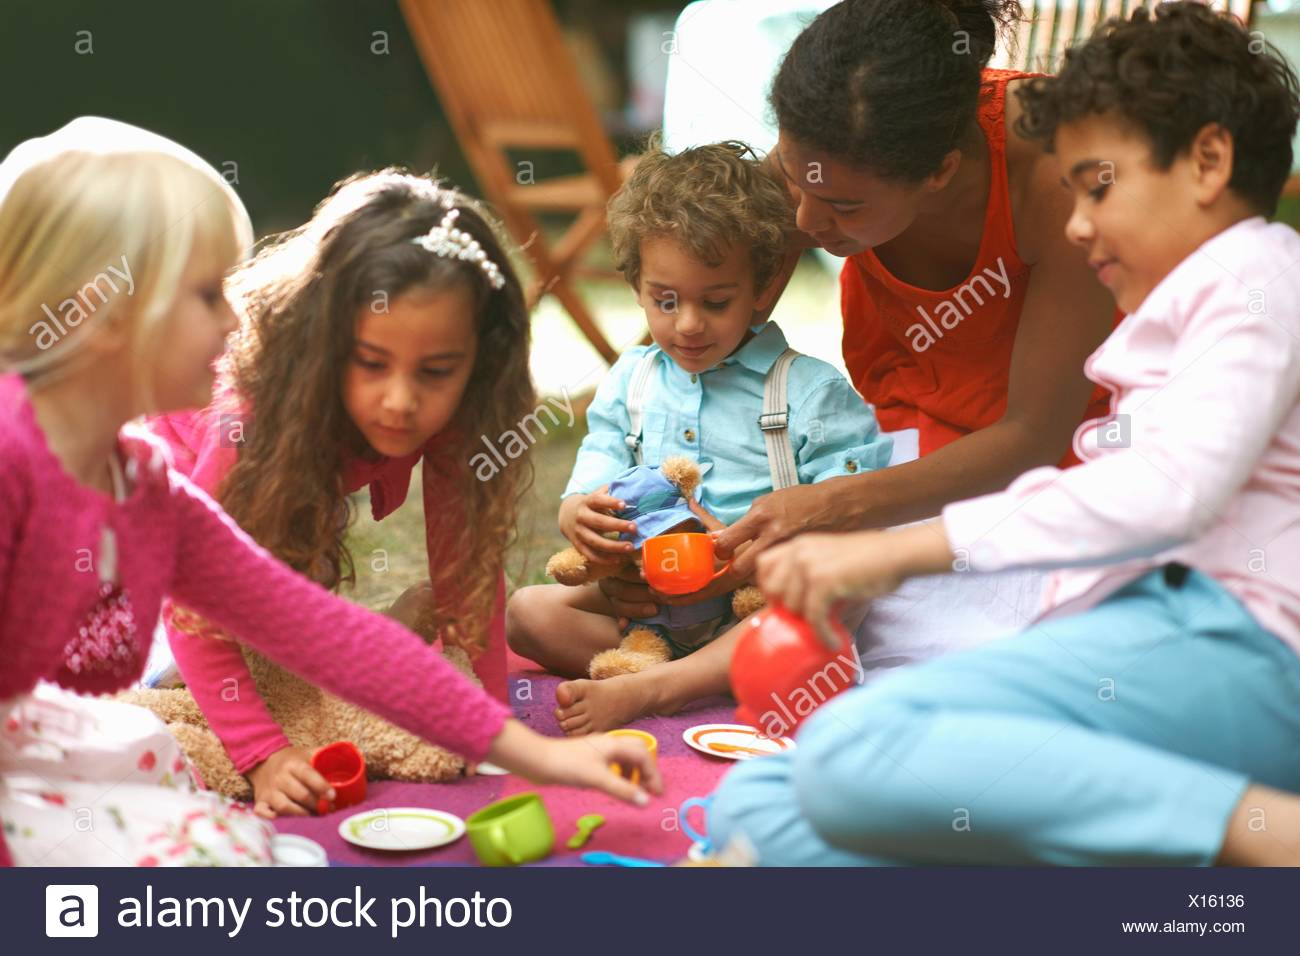 Mother and four children playing picnics at garden birthday party - Stock Image